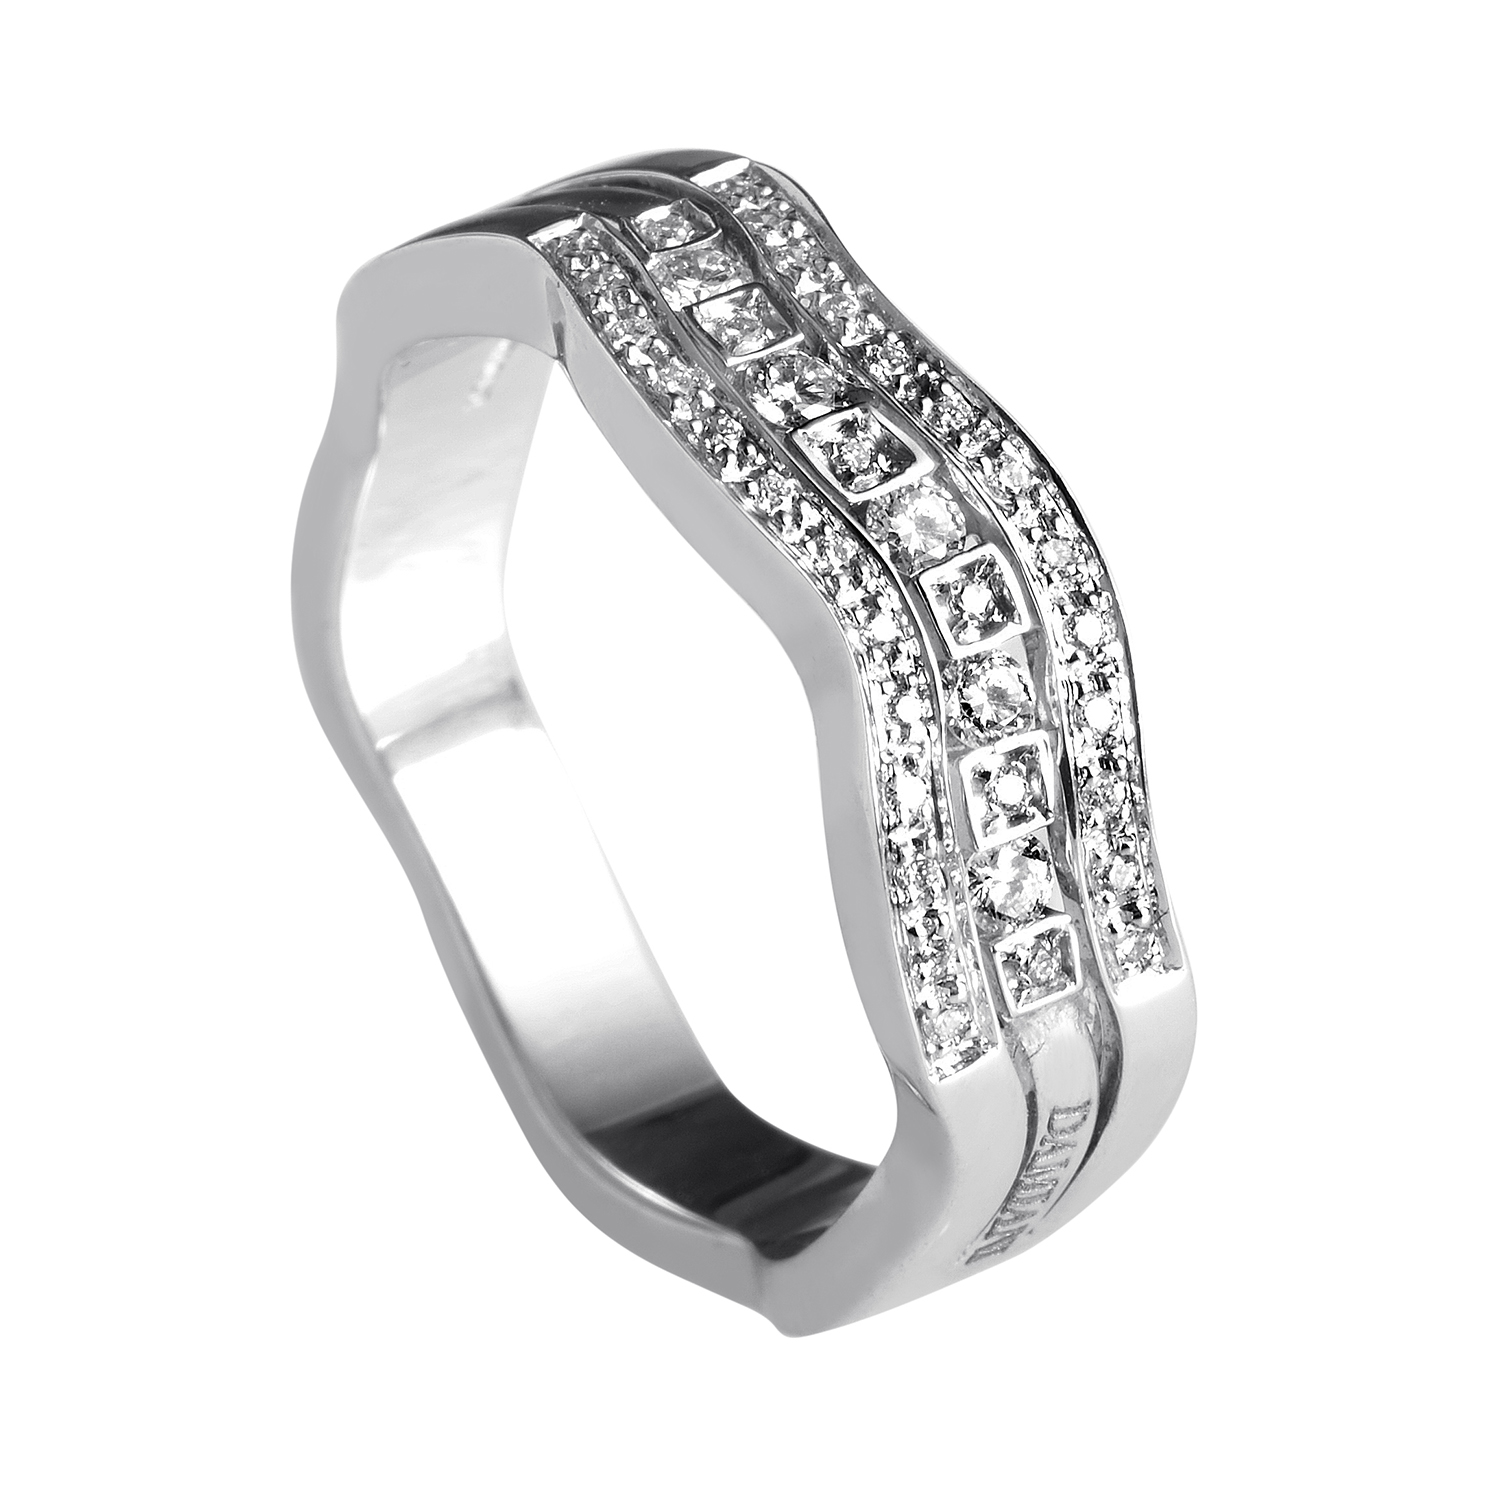 Belle Epoque 18K White Gold Diamond Band Ring